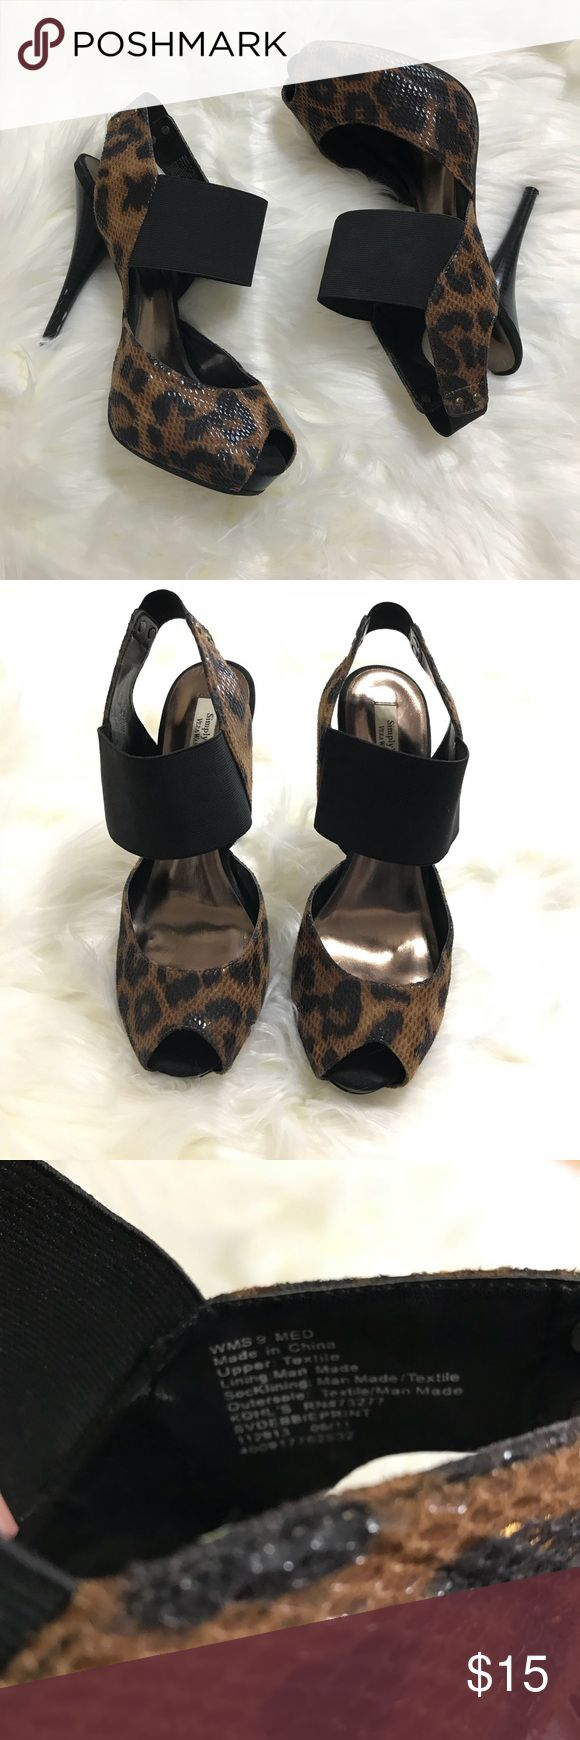 | Simply Vera Wang | 9 | Cheetah heels GUC Vera Wang heels Super comfy thick strap on the front makes them easy to slip on and wear for hours See scuff on heels. Easy to fix with a sharpie! Simply Vera Vera Wang Shoes Heels